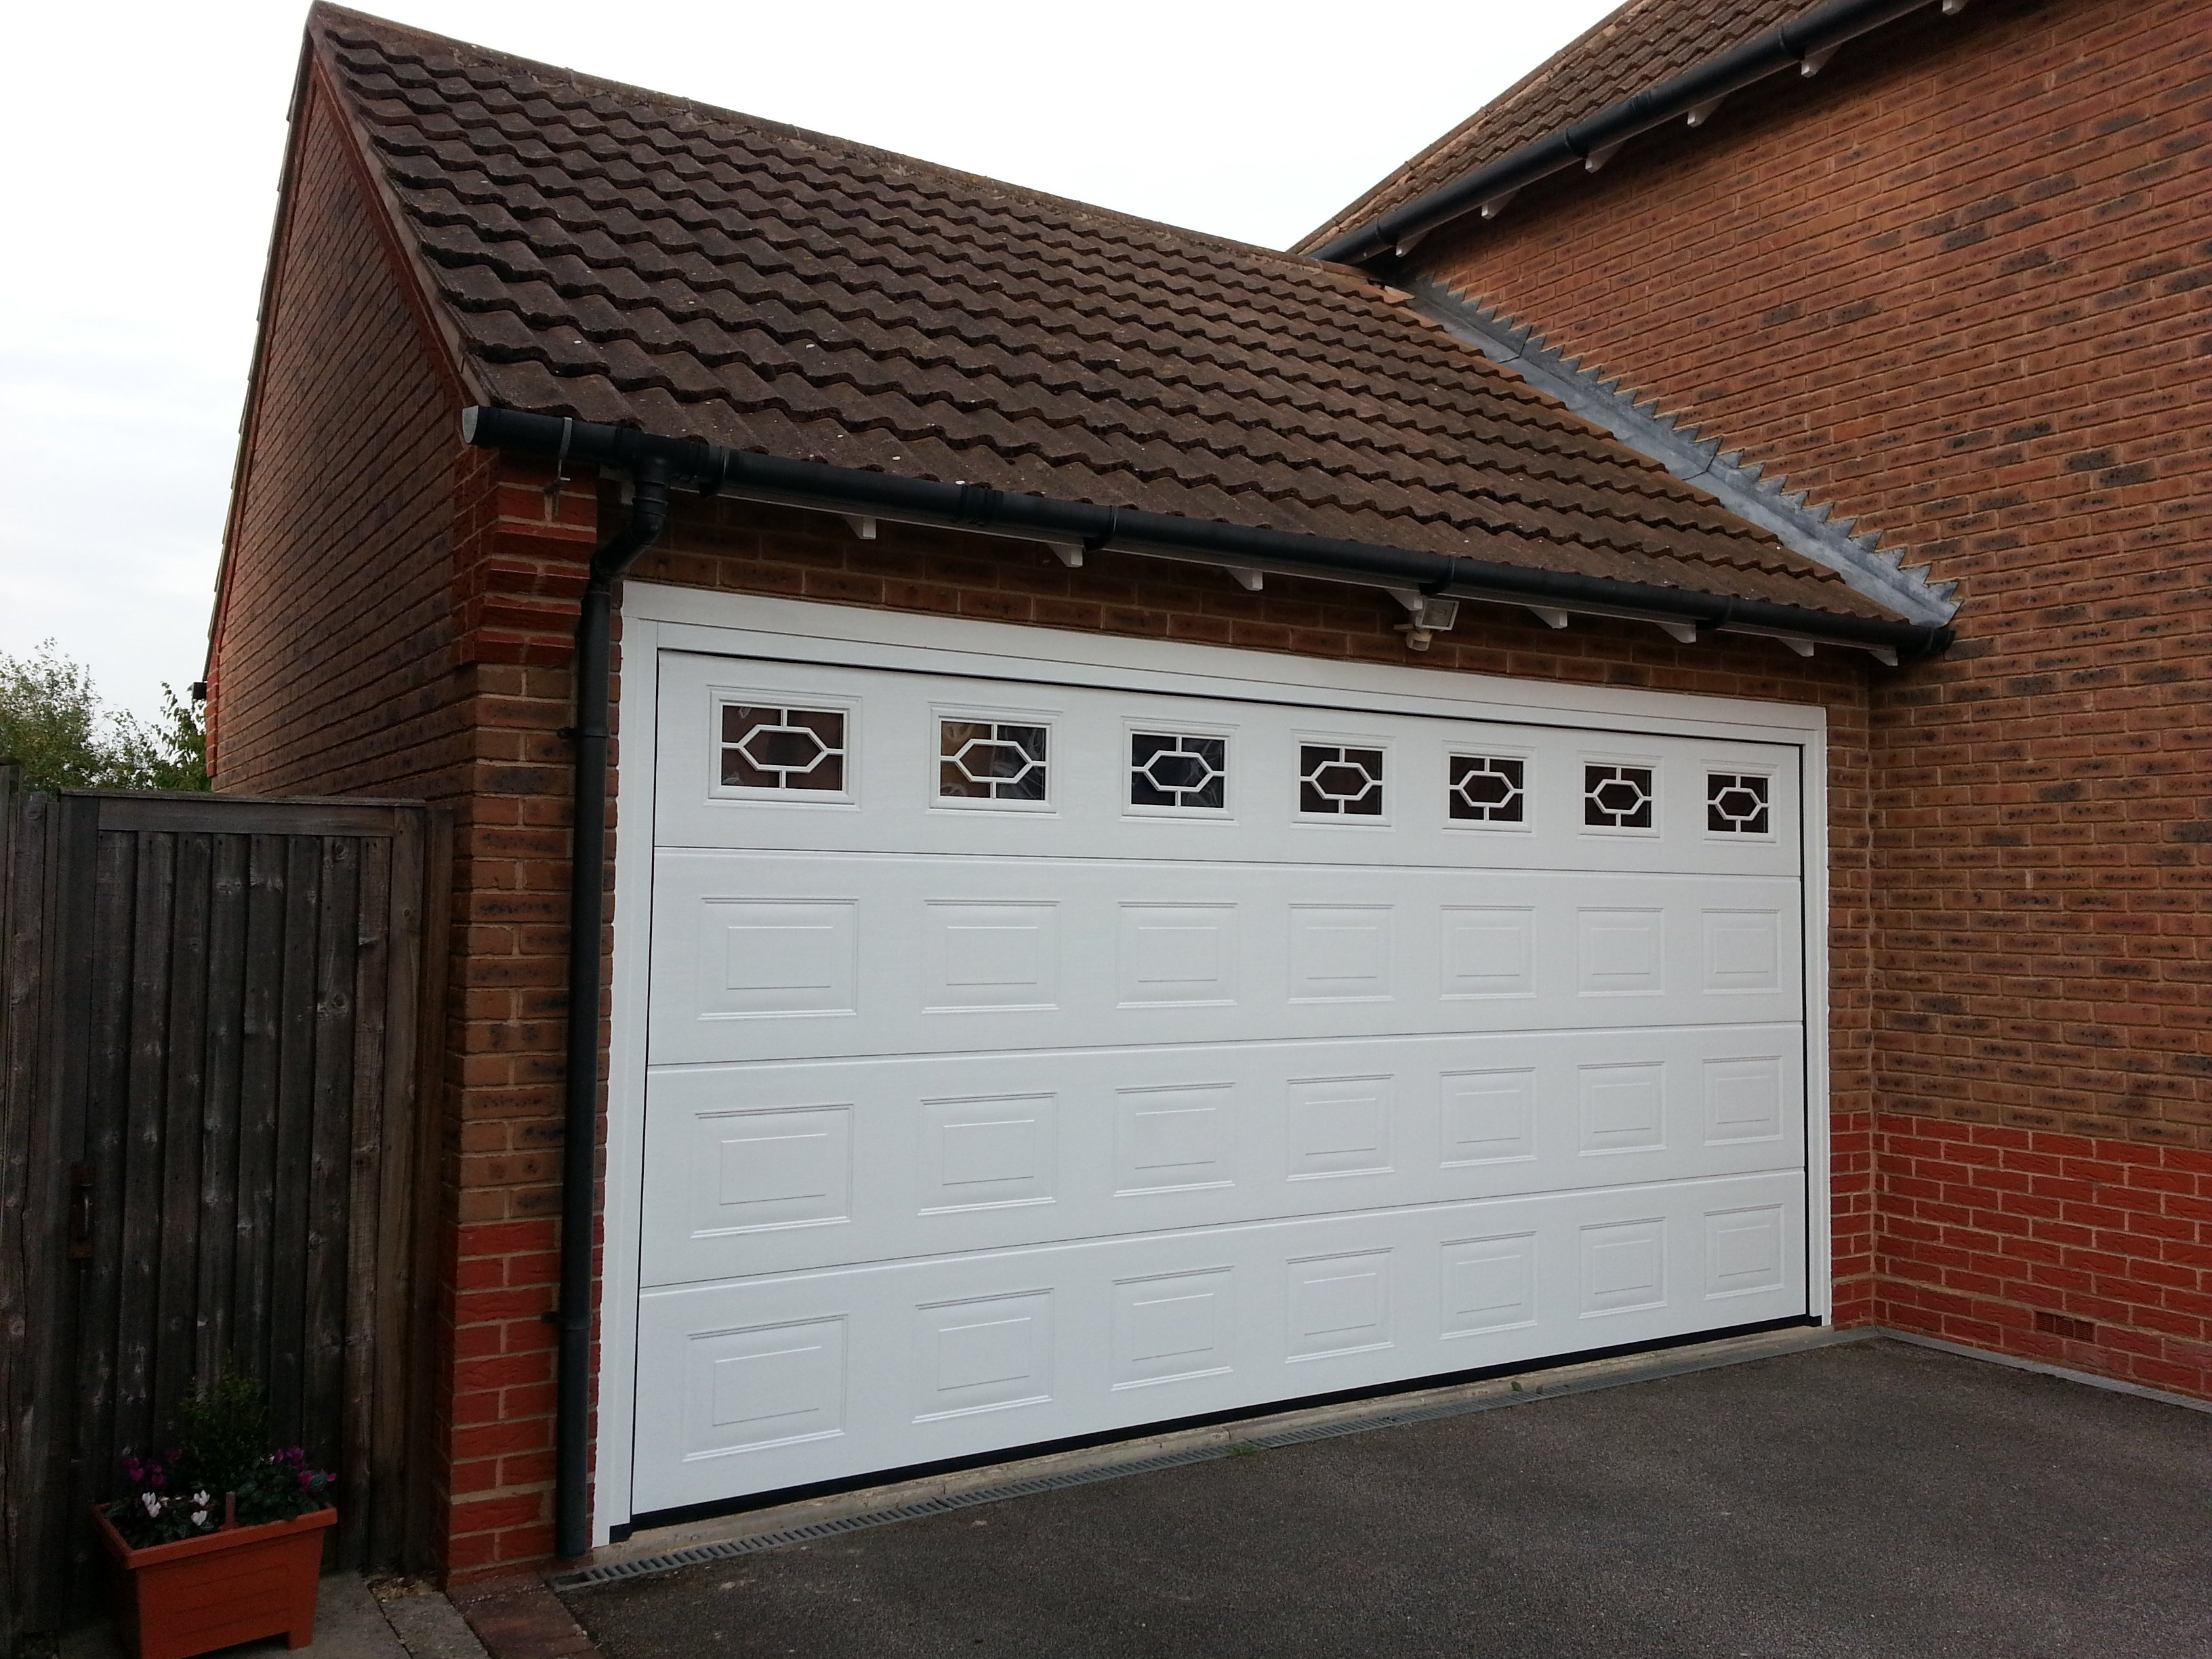 2448 #674030 Stylish Garage Doors By Taundry Doors Of Walsall save image Stylish Garage Doors 37873264